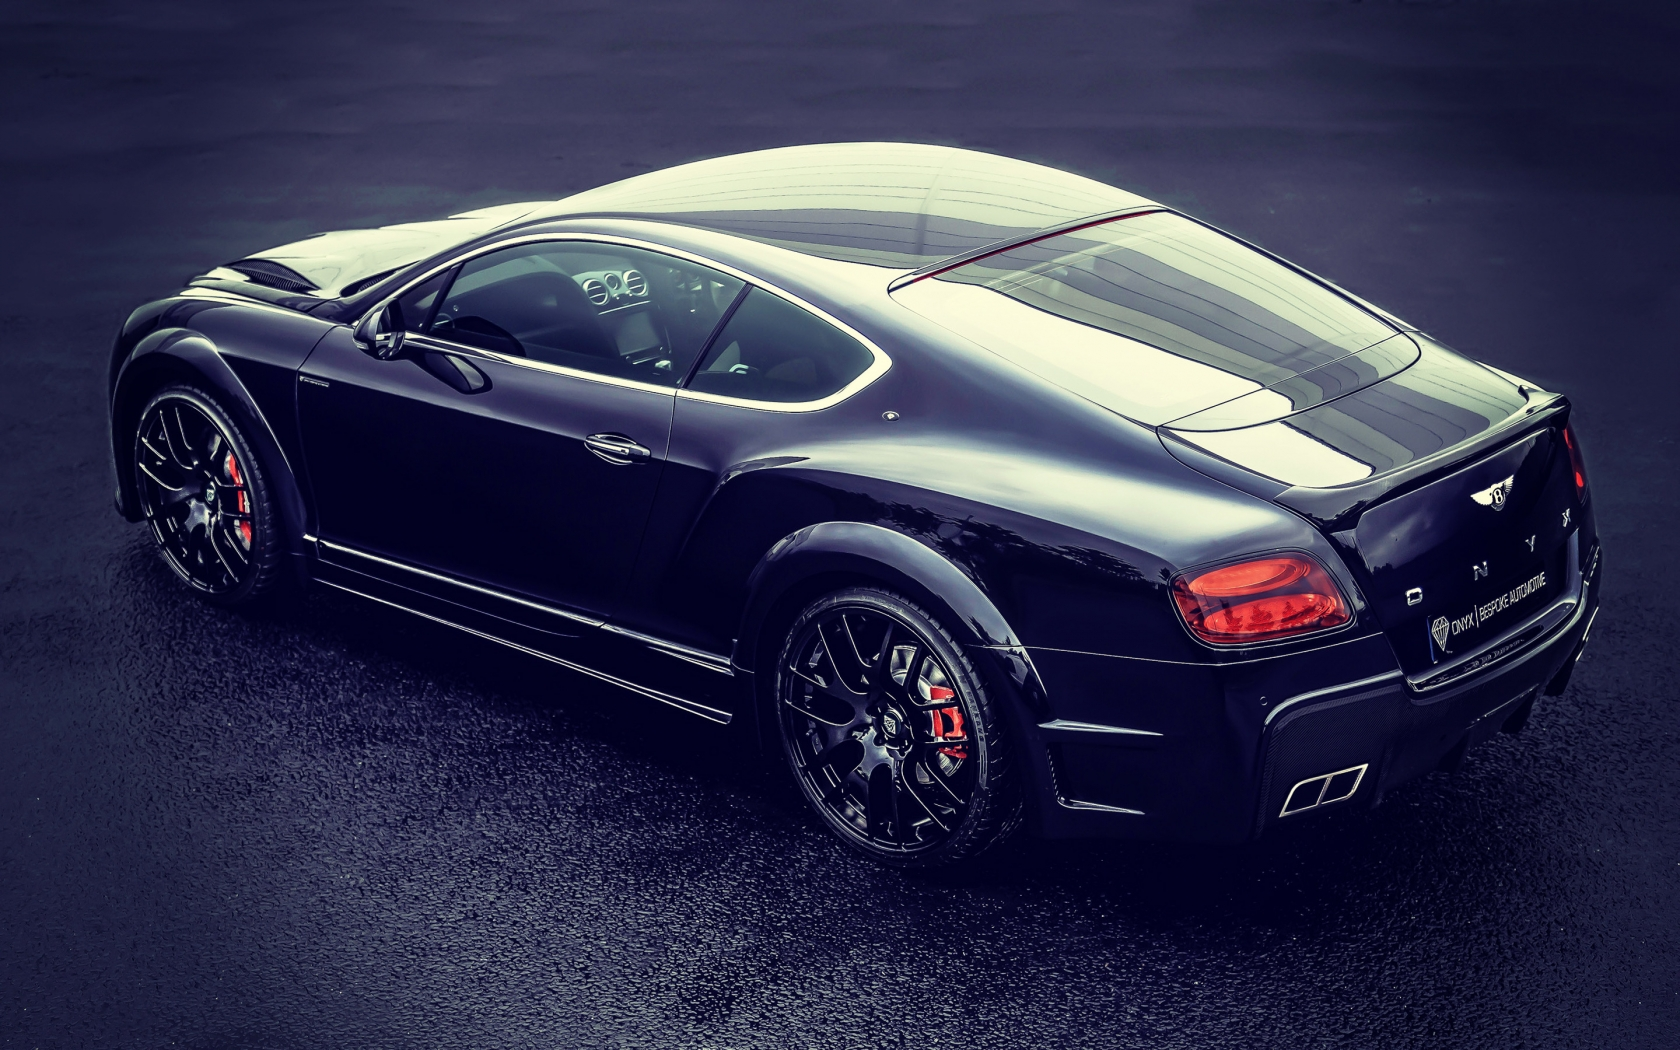 Onyx Bentley Continental Concept for 1680 x 1050 widescreen resolution